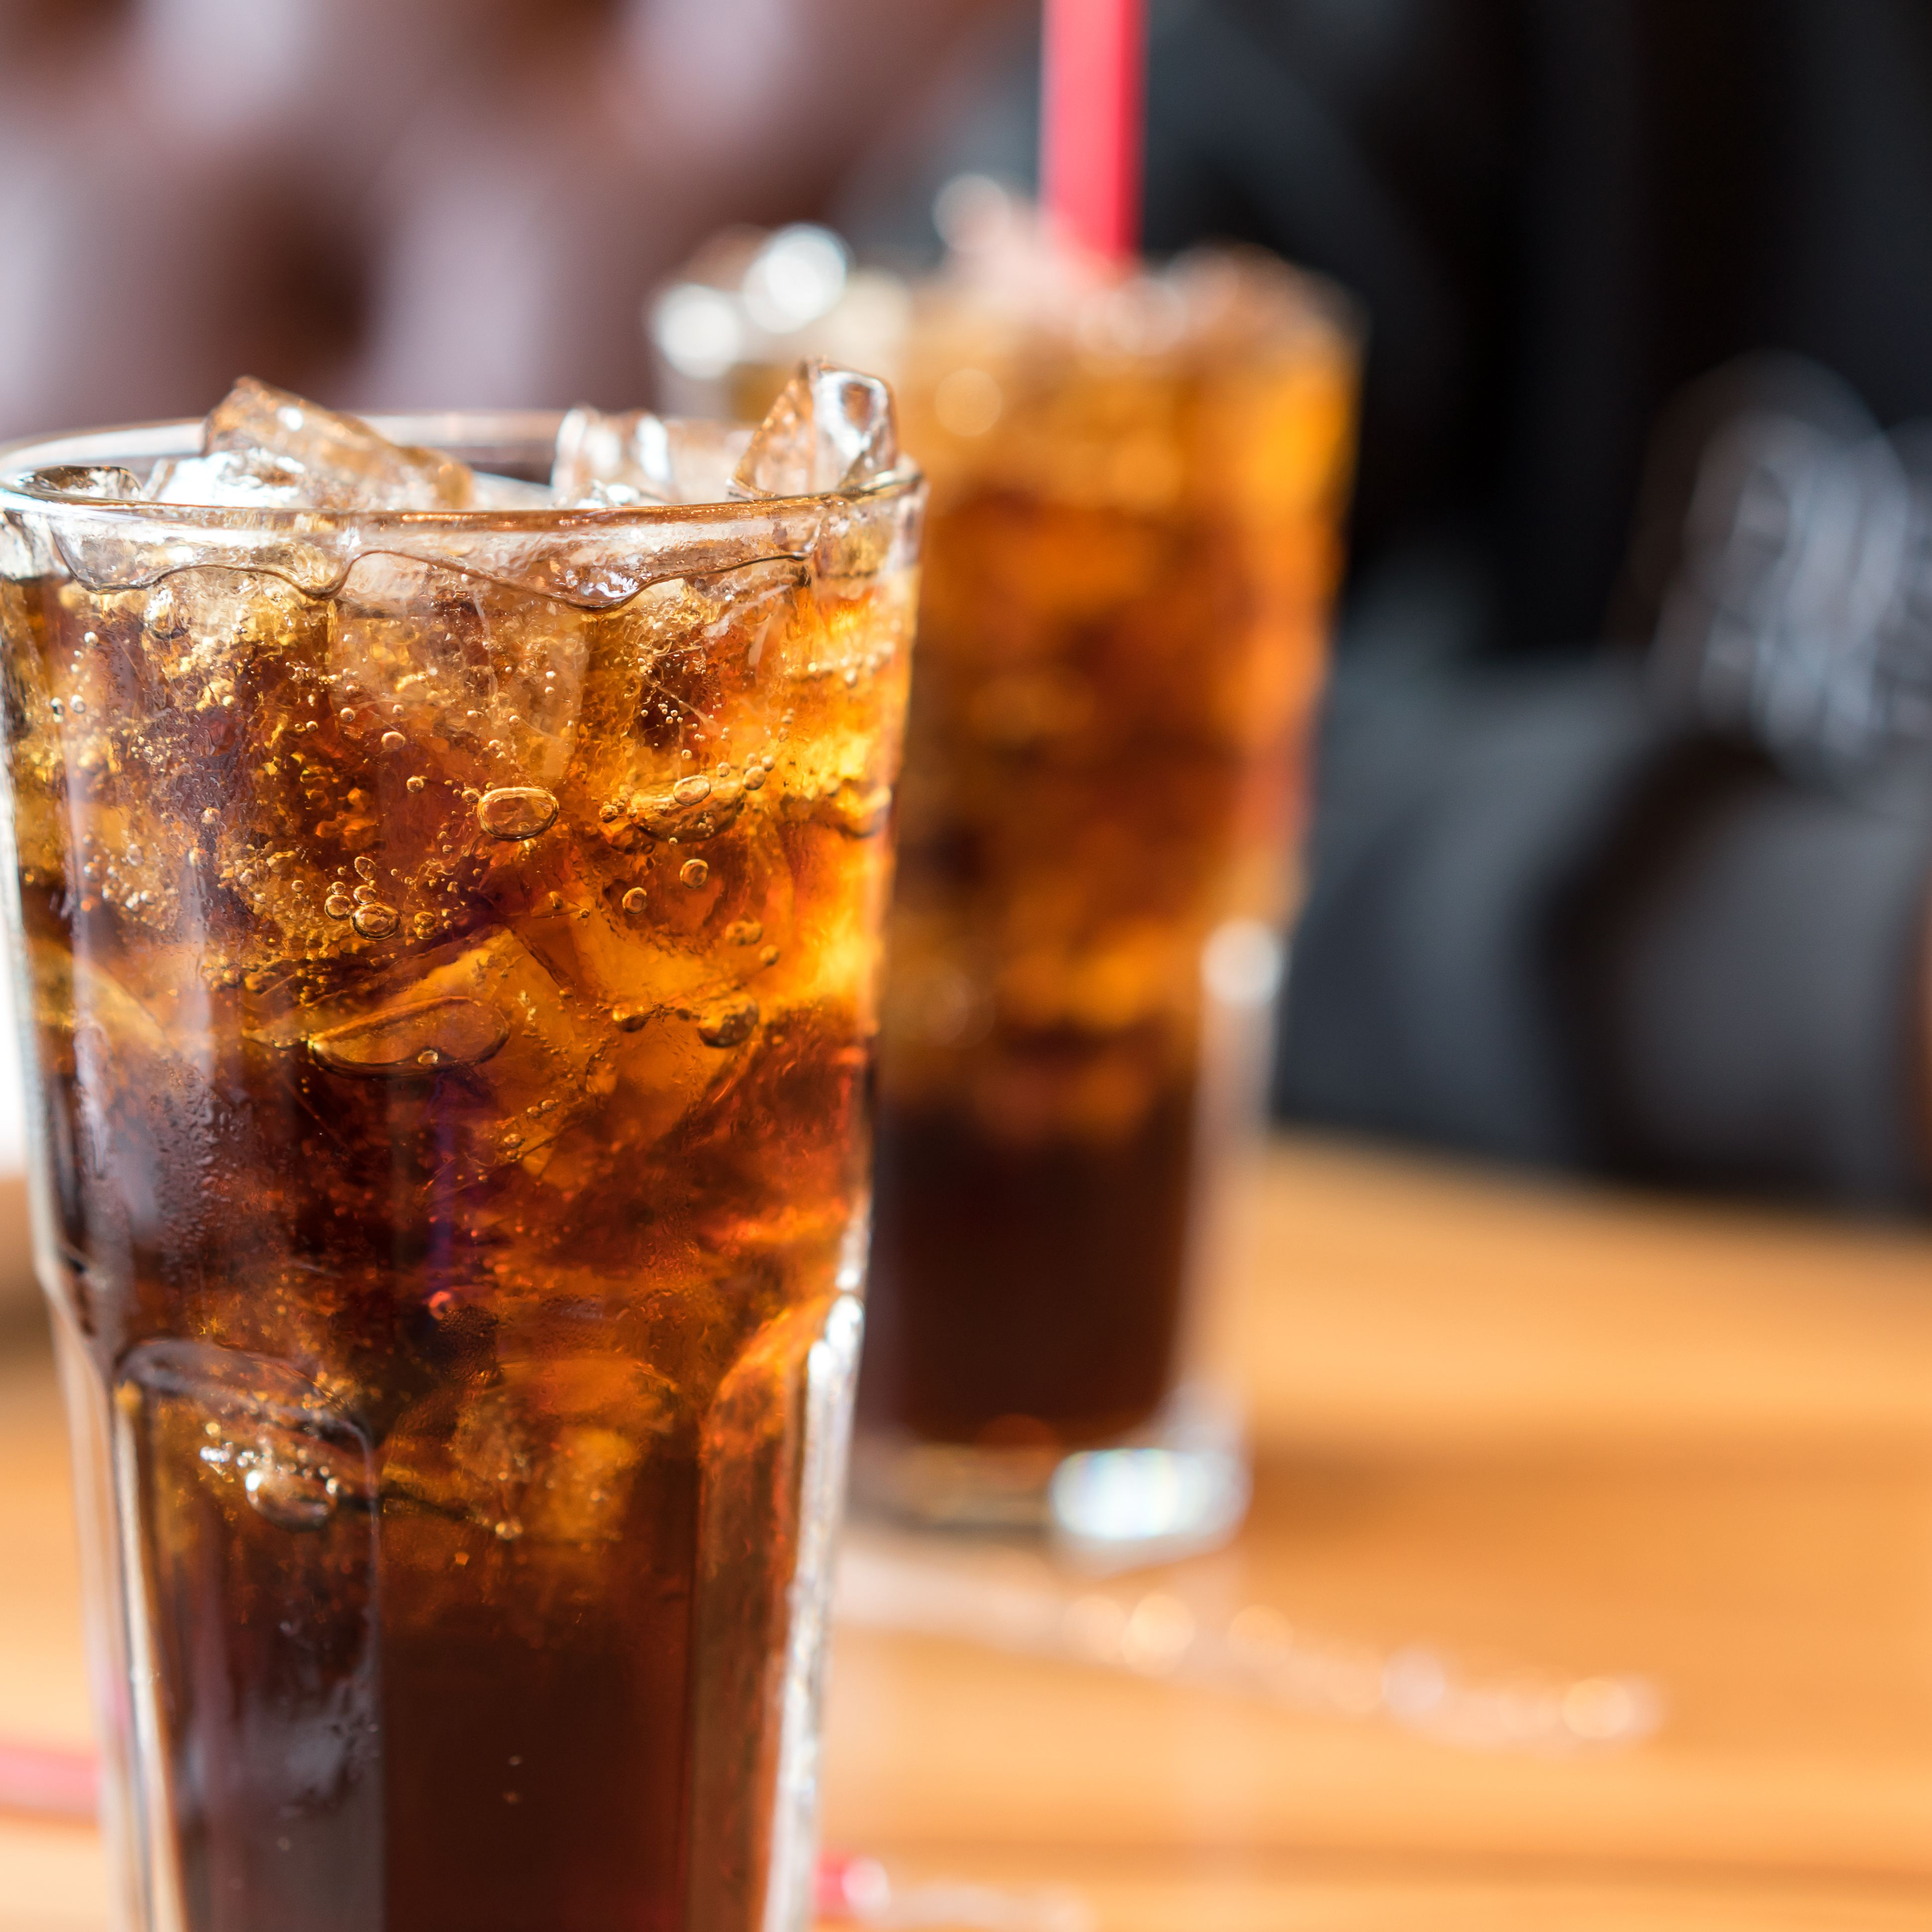 How To Remove Soft Drink Stains From Fabric